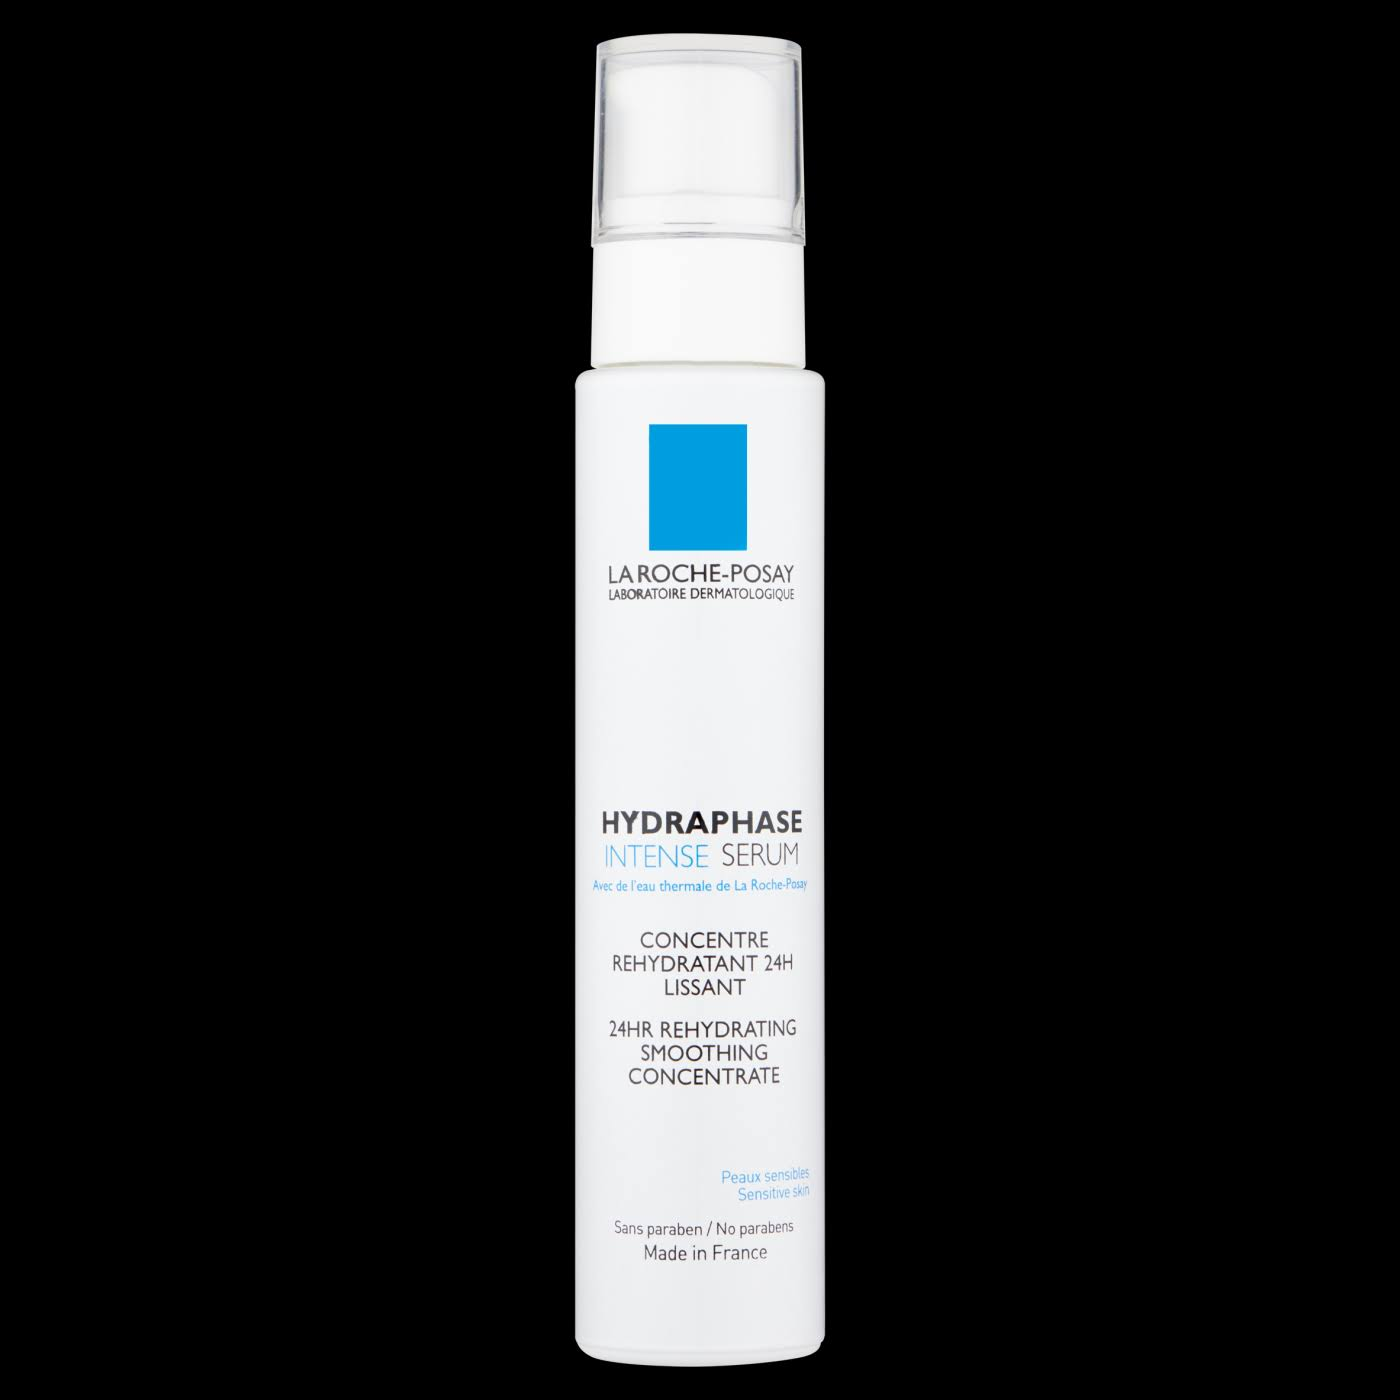 La Roche Posay Hydraphase Intense Serum - 30ml